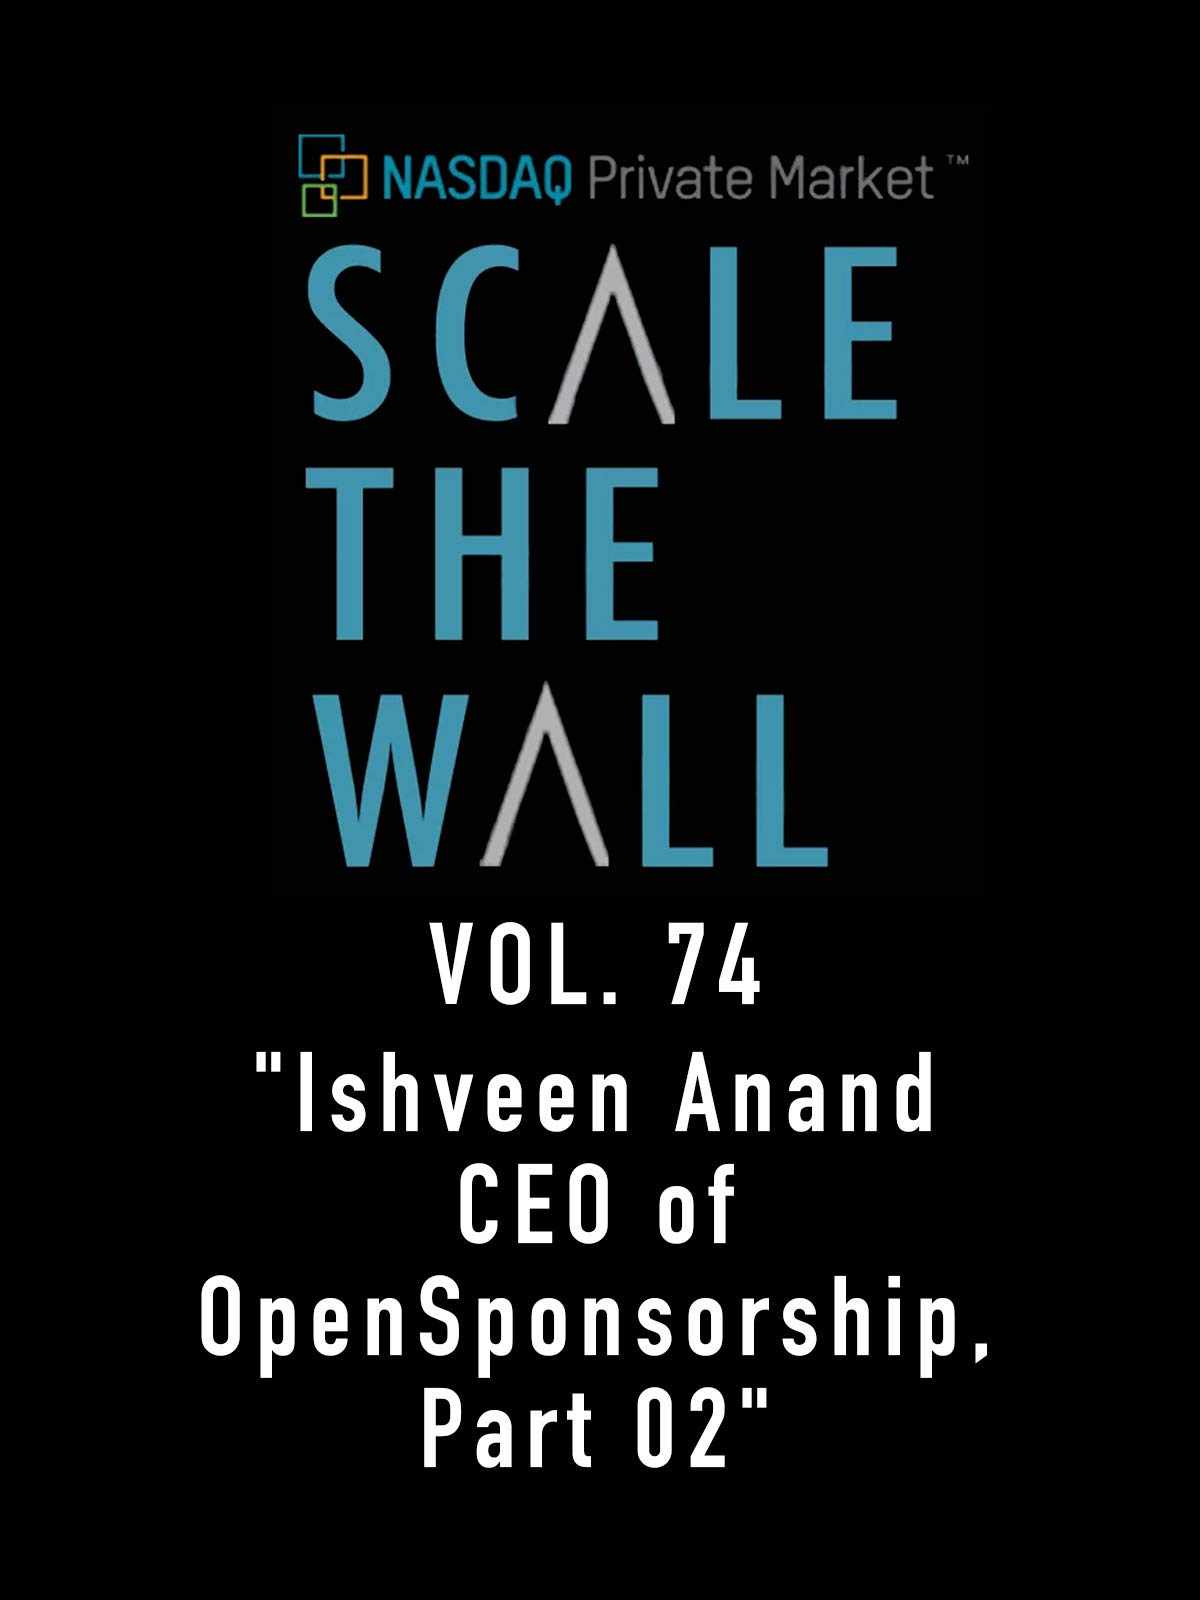 """Scale The Wall Vol. 74 """"Ishveen Anand CEO of OpenSponsorship, Part 02"""""""